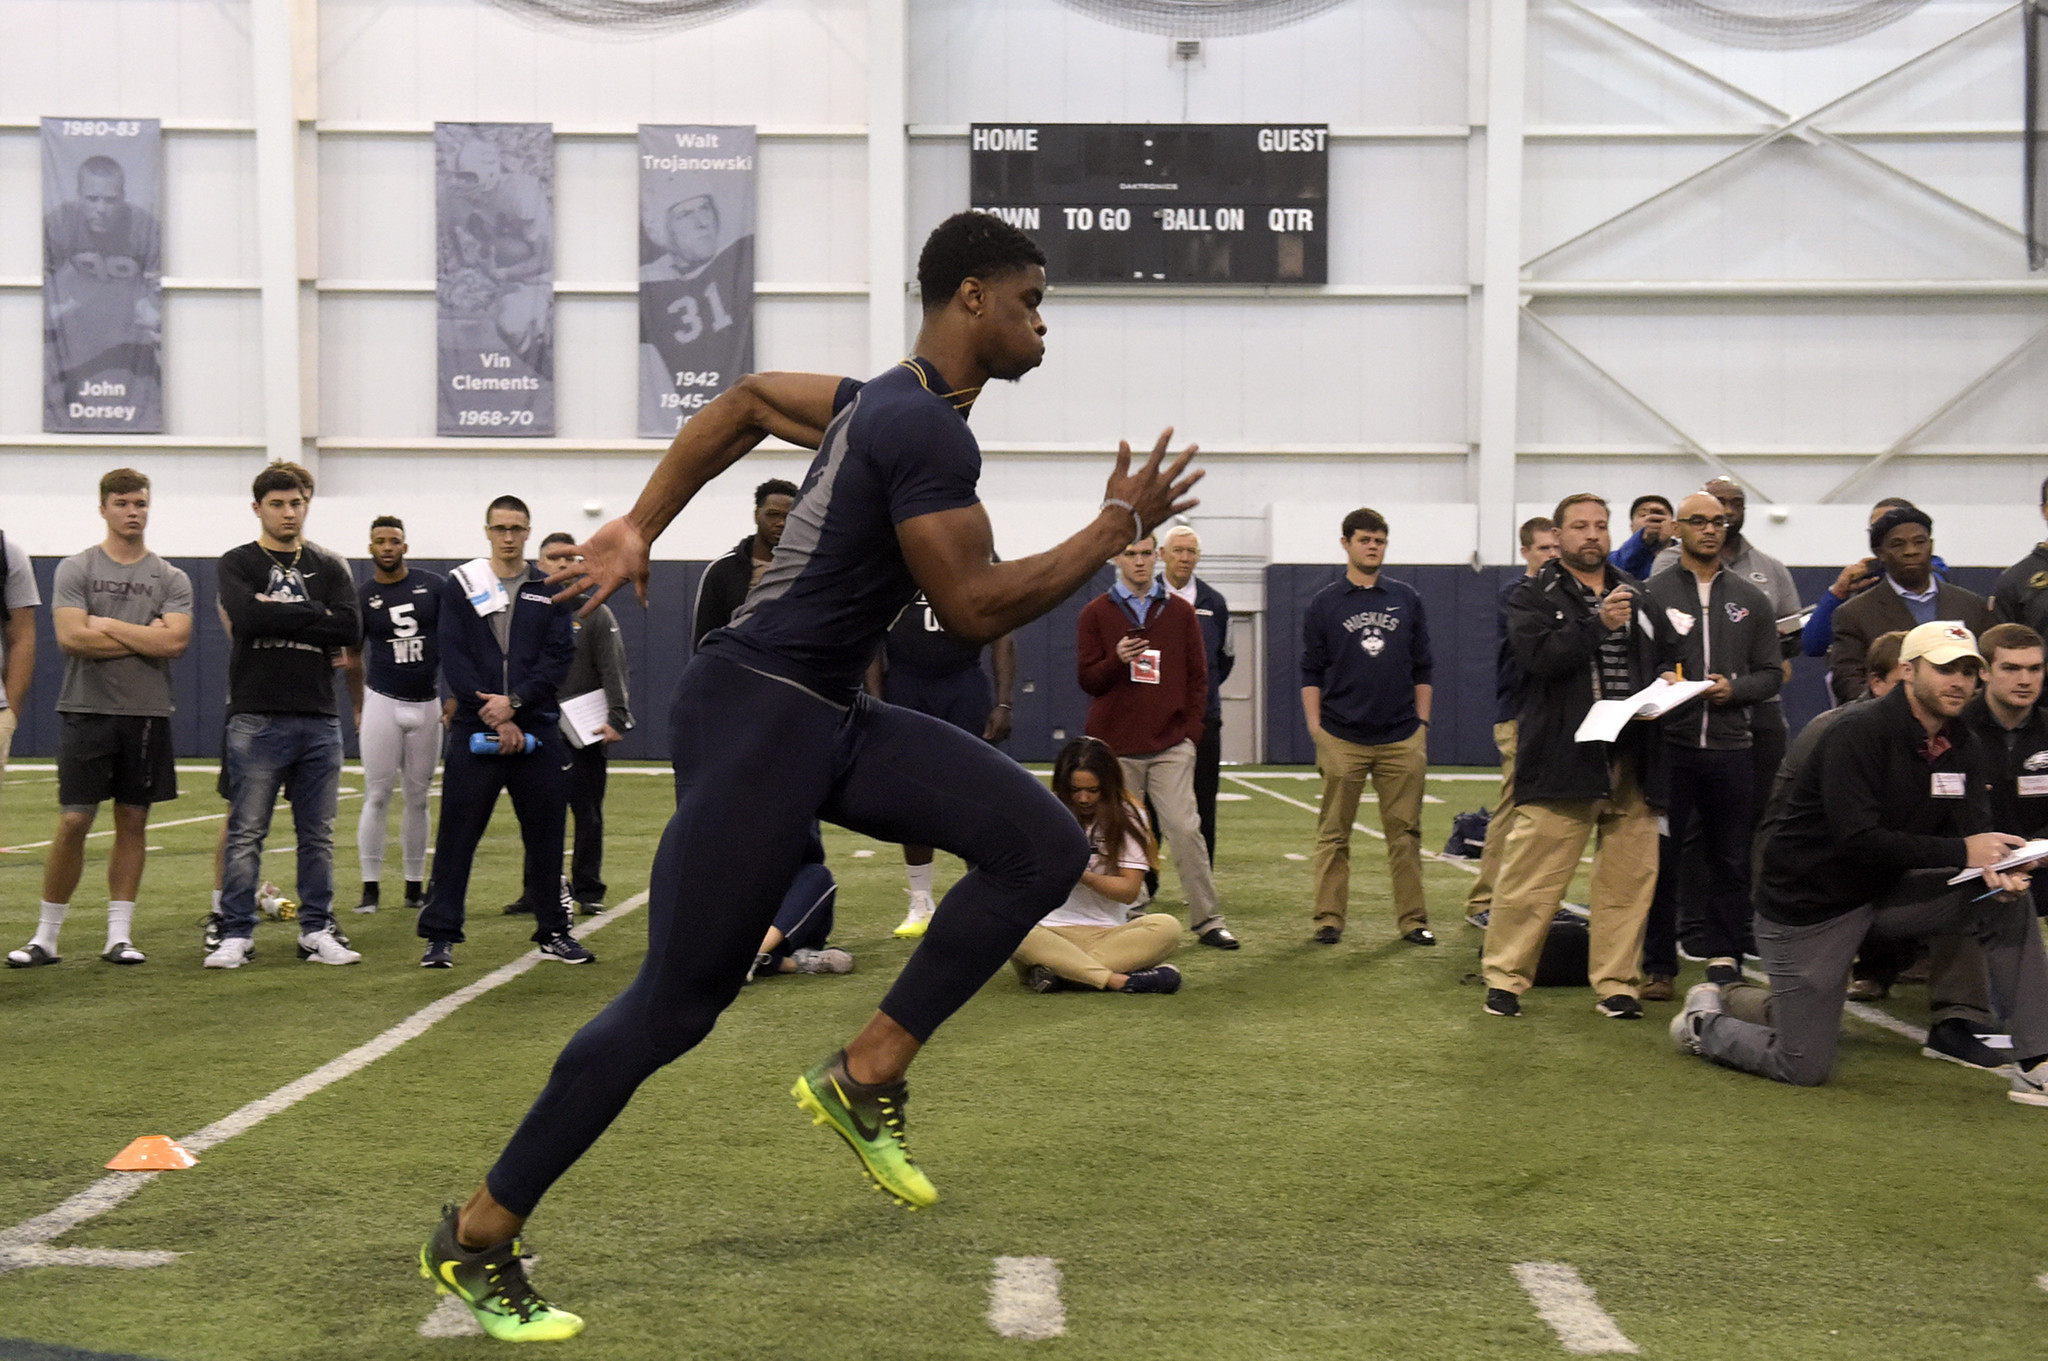 Hc-uconn-football-pro-day-0323-20170322